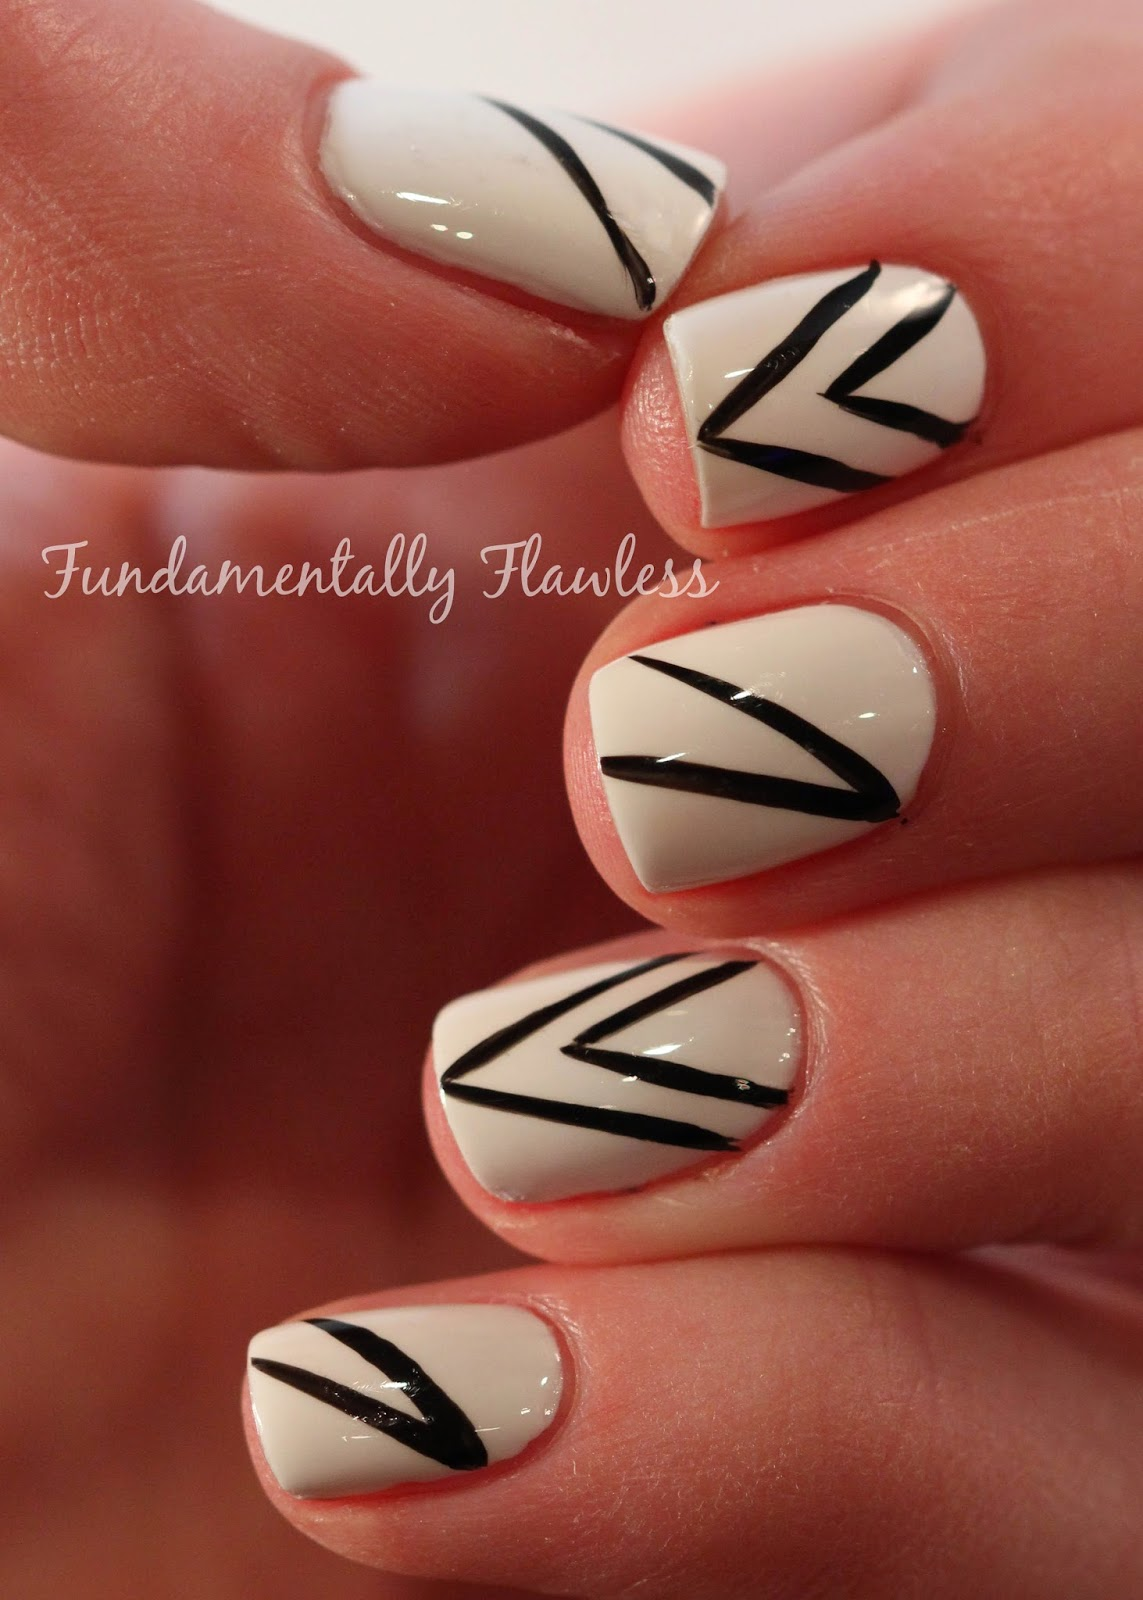 White and black nail art by Neringa BootsFeelLikeNew